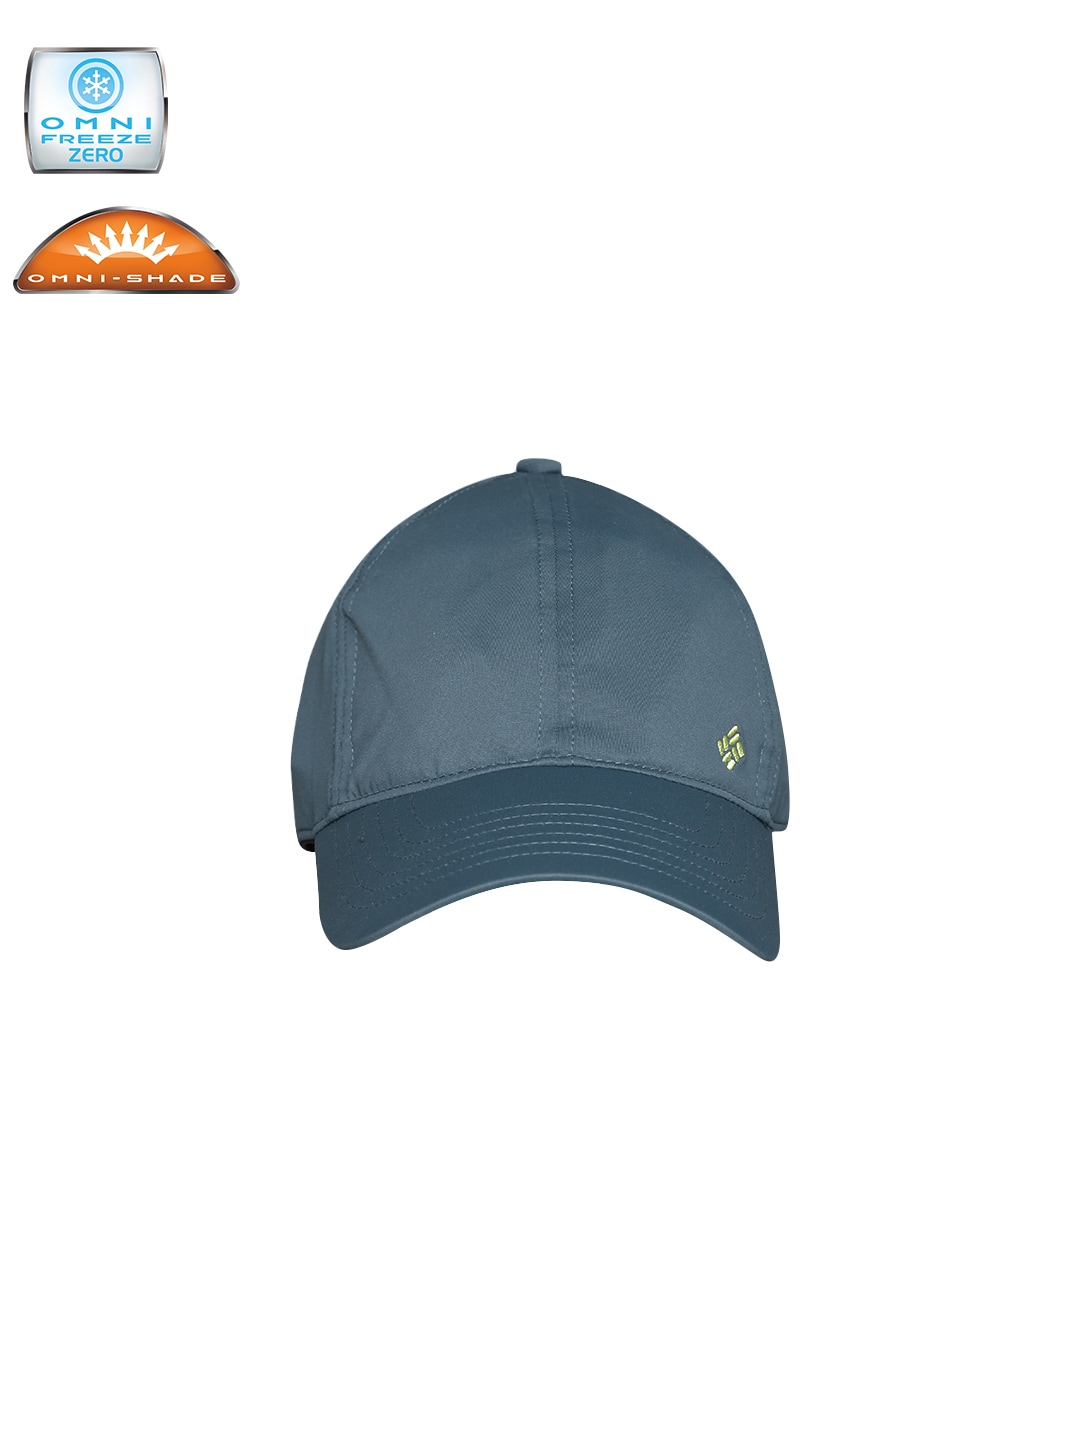 07c3a94b445 Columbia - Buy Columbia Clothing   Accessories online